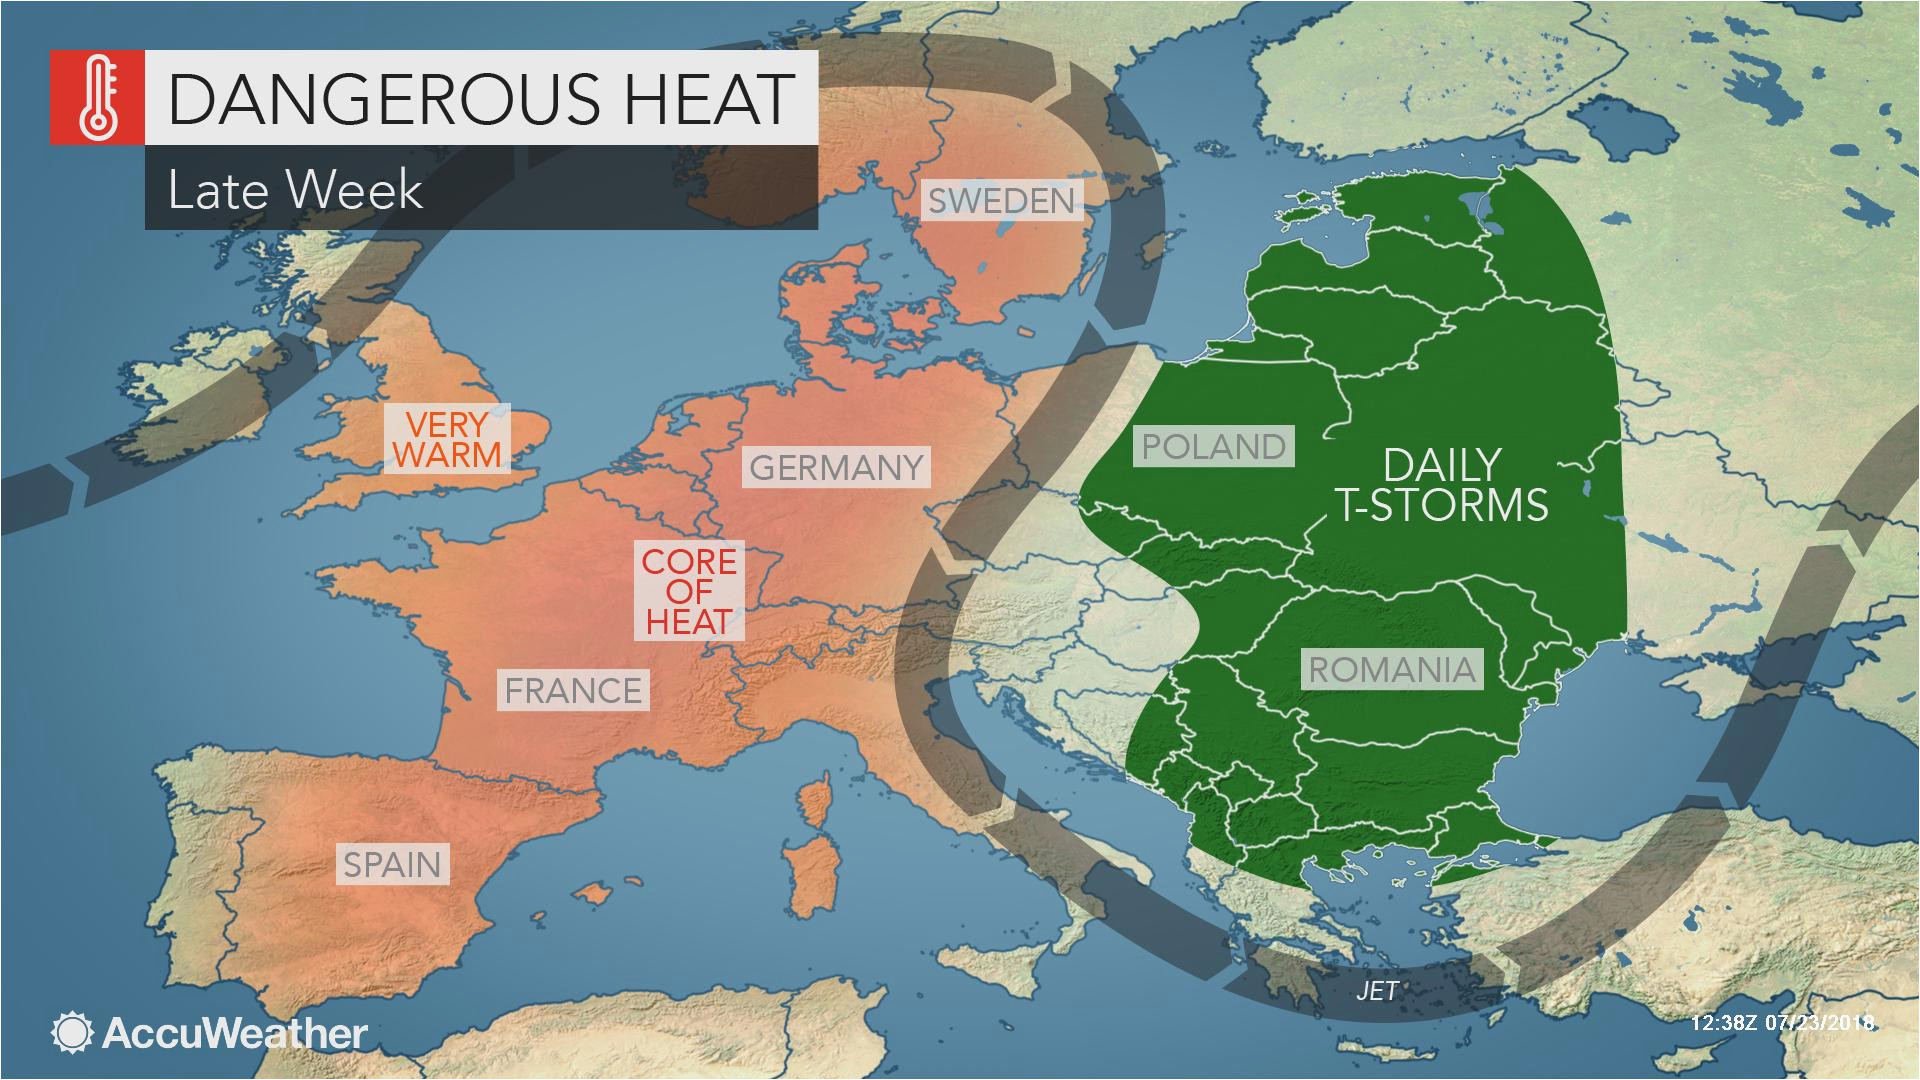 intense heat wave to bake western europe as wildfires rage in sweden